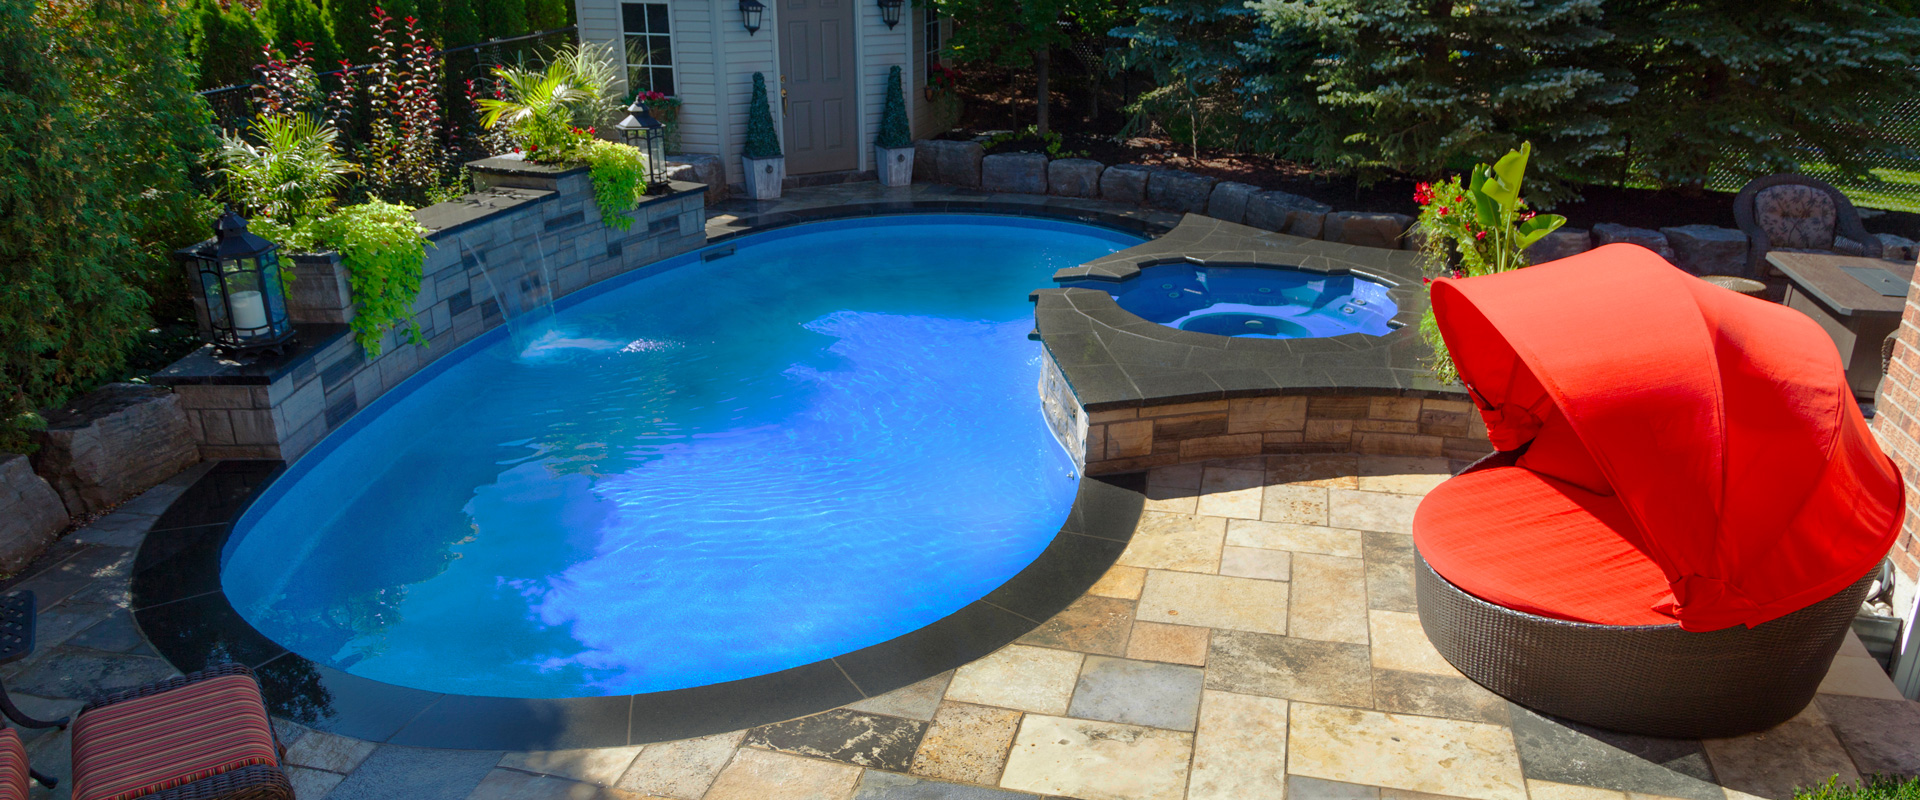 The deiuliis inground pool showcase pioneer family pools for Pool showcase